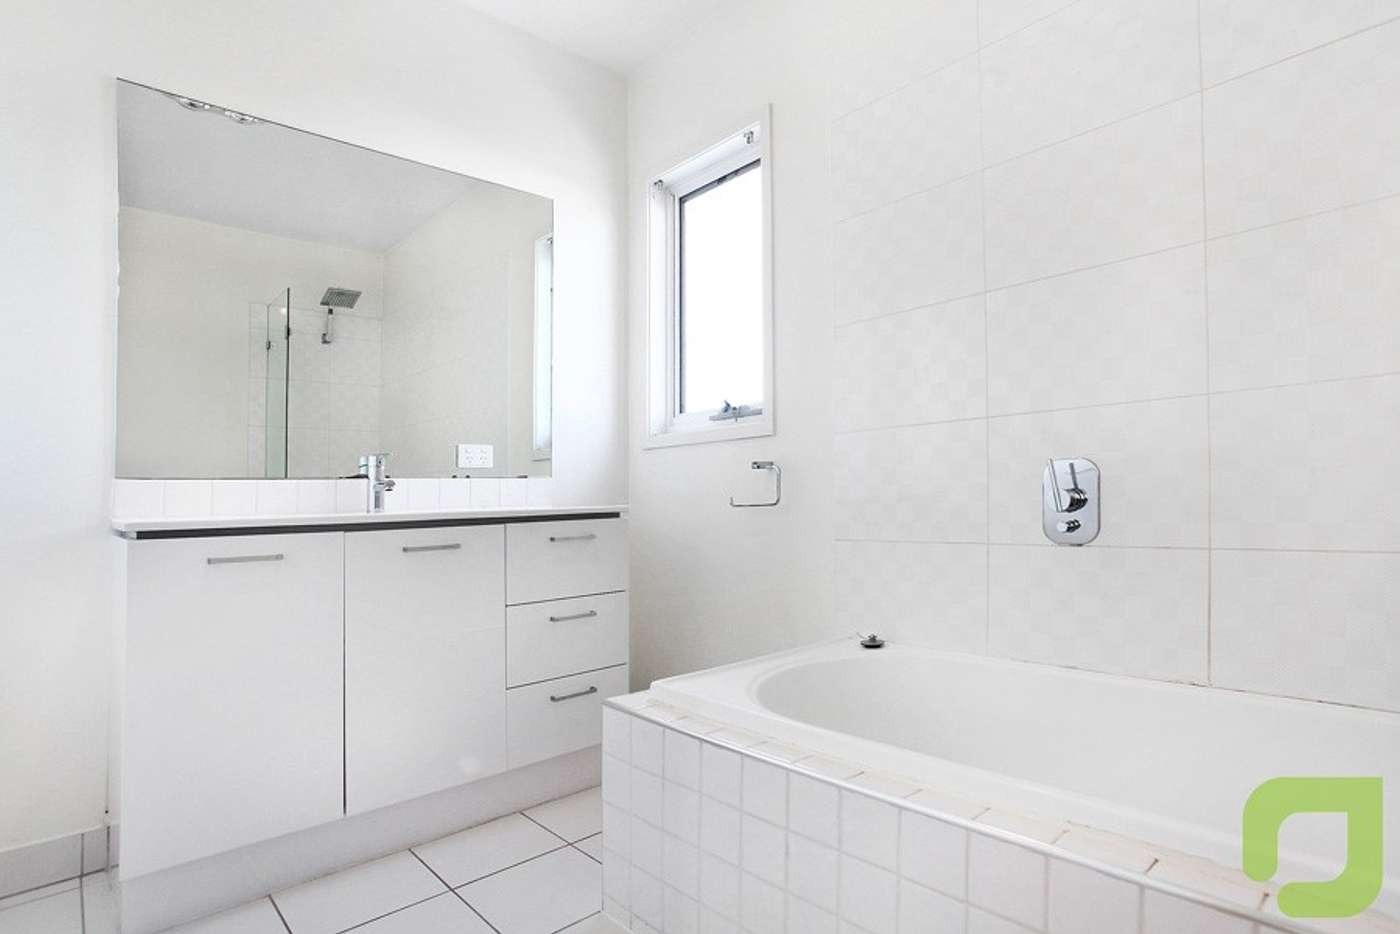 Seventh view of Homely townhouse listing, 1 Fyans Street, Yarraville VIC 3013